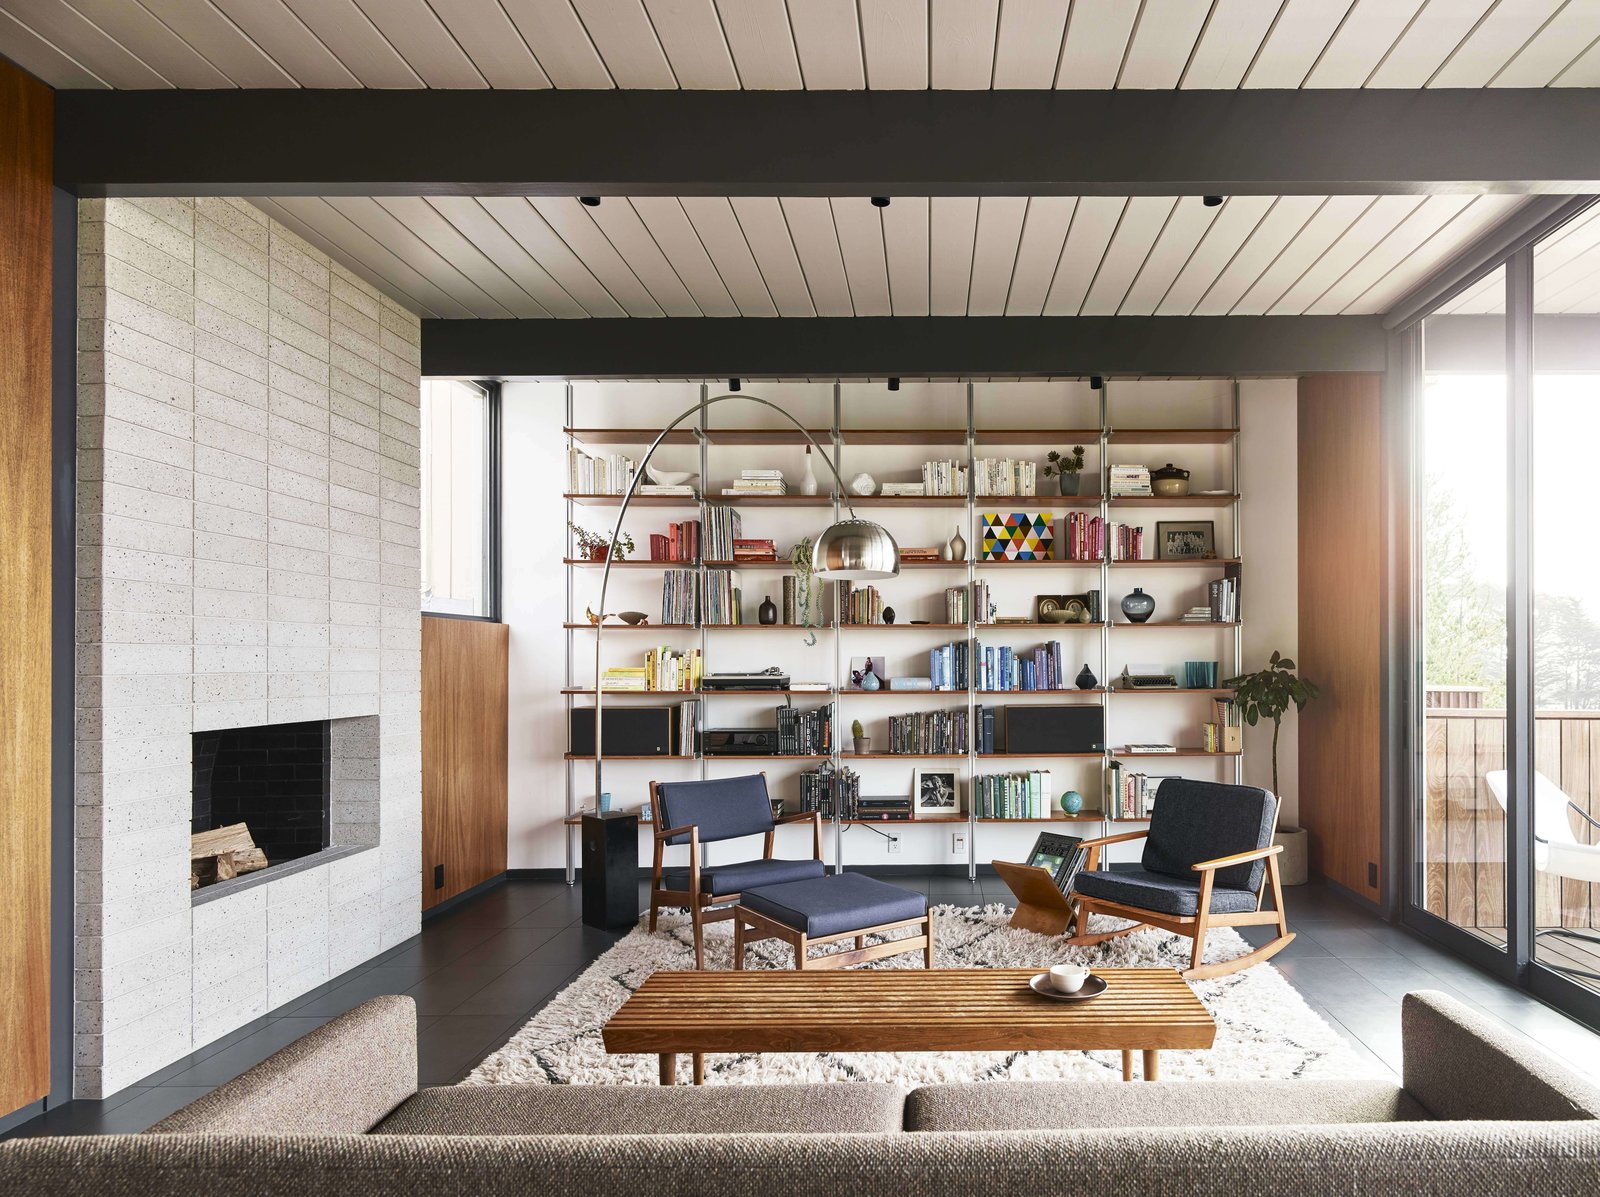 Living, Wood Burning, Shelves, Ottomans, Chair, Coffee Tables, Sofa, Rug, Standard Layout, and Floor  Best Living Standard Layout Photos from See the Careful Transformation of a Midcentury Eichler in San Francisco